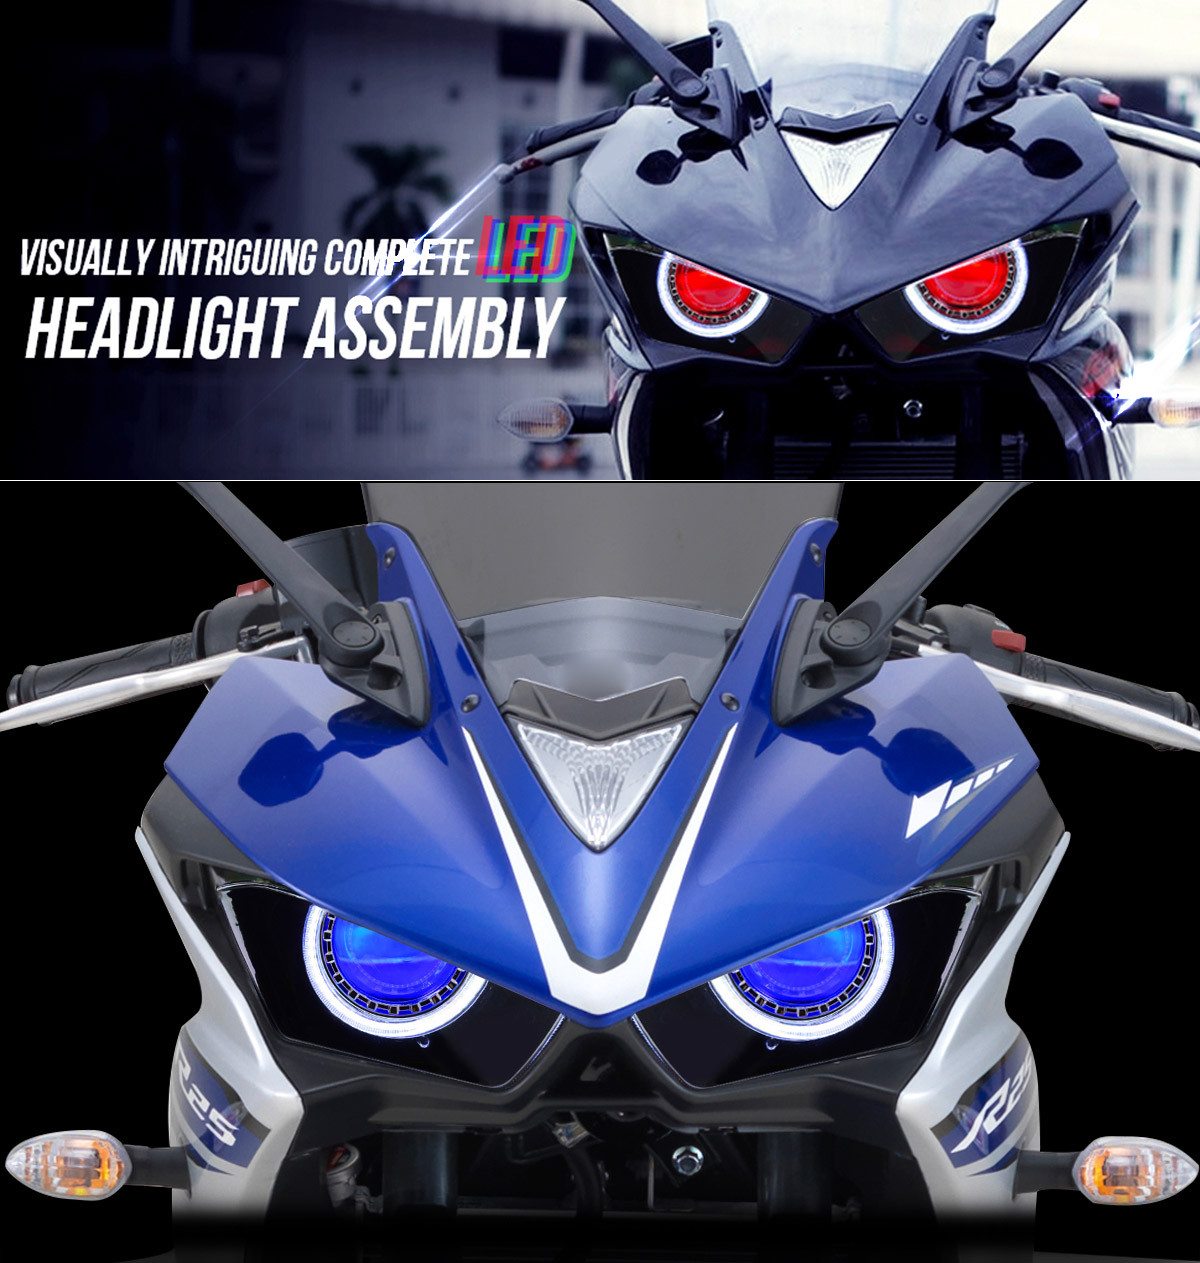 yamaha led headlight